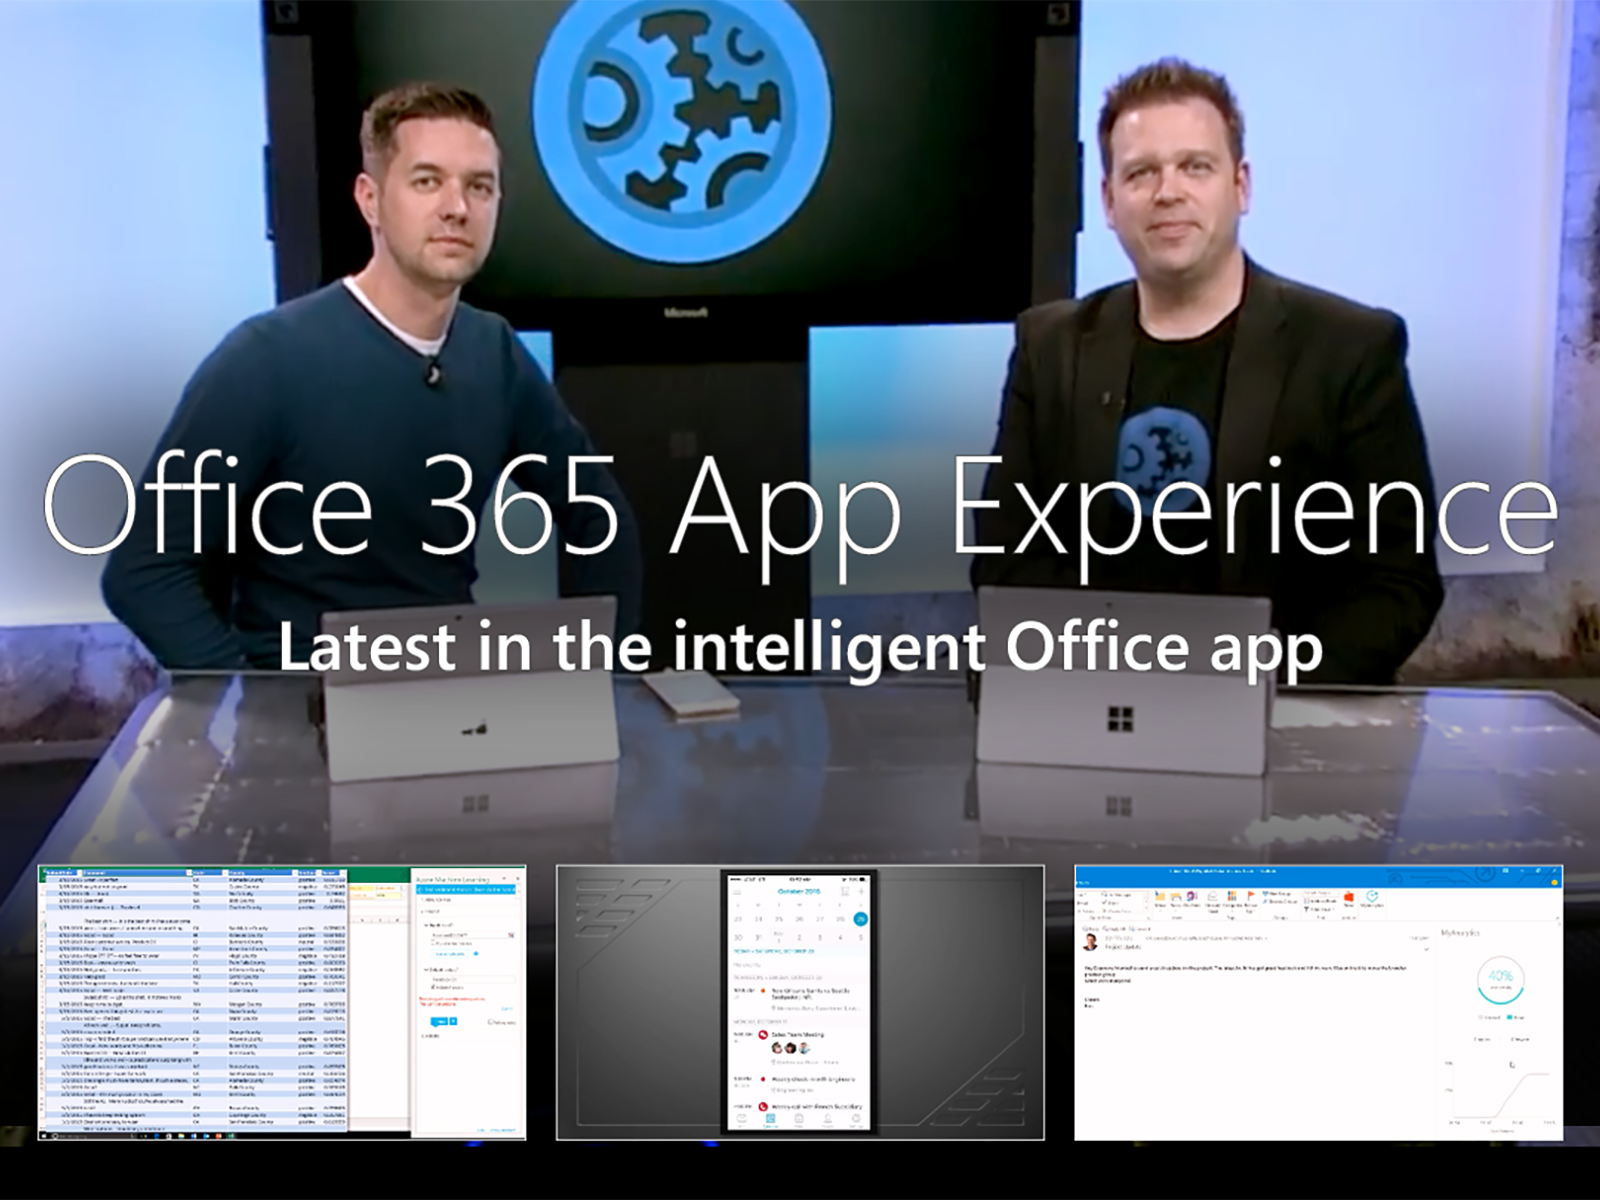 Artwork for New intelligent Office 365 app experiences